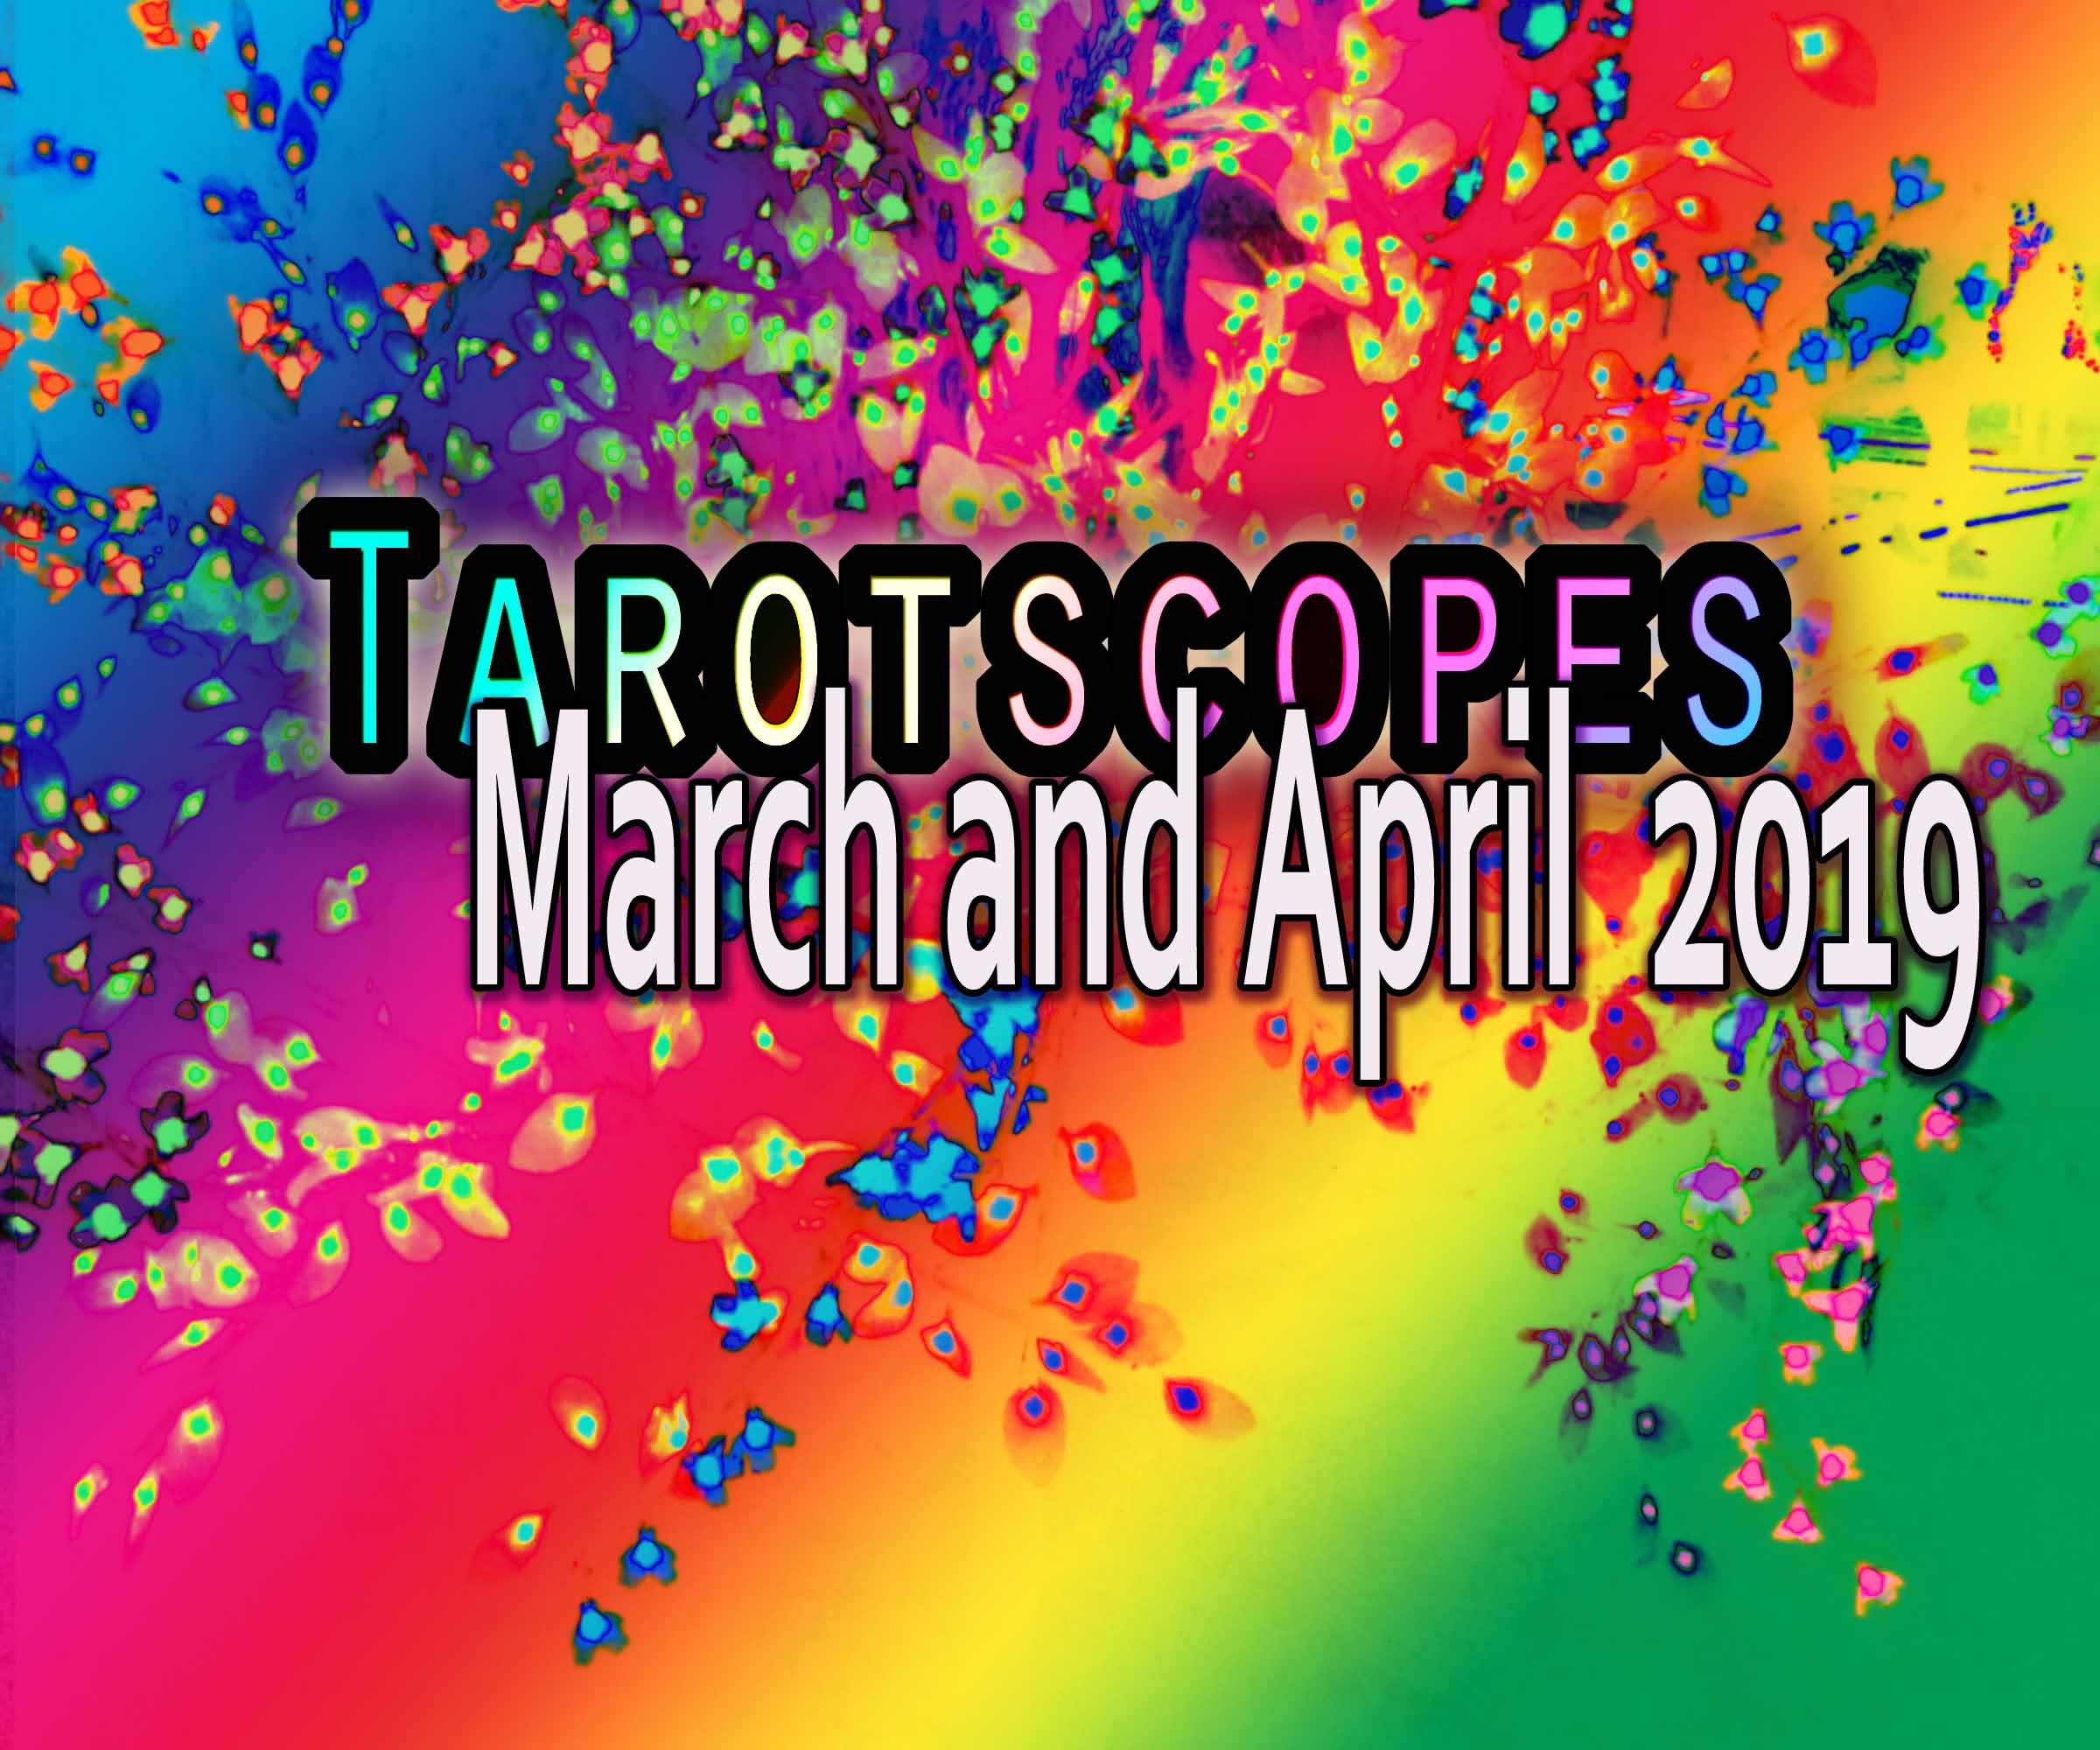 Tarotscopes 2019: March and April